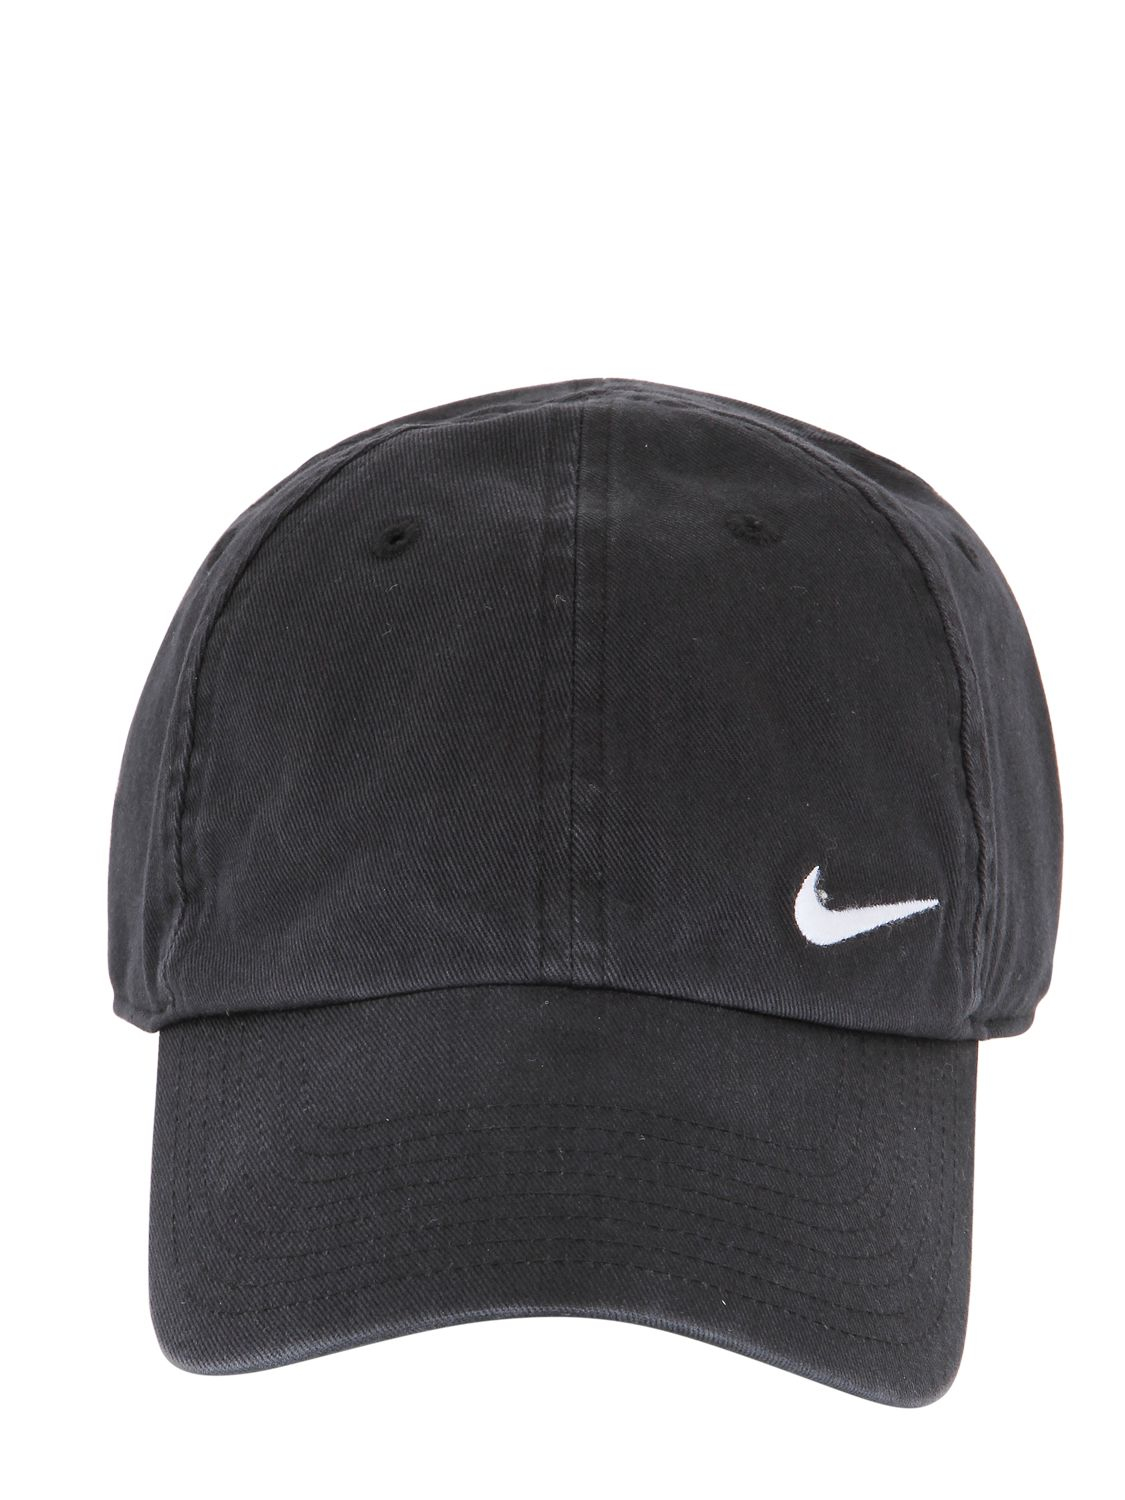 c8b9bf14b093 ... czech nike swoosh cotton baseball hat in black for men lyst d30f9 8083d